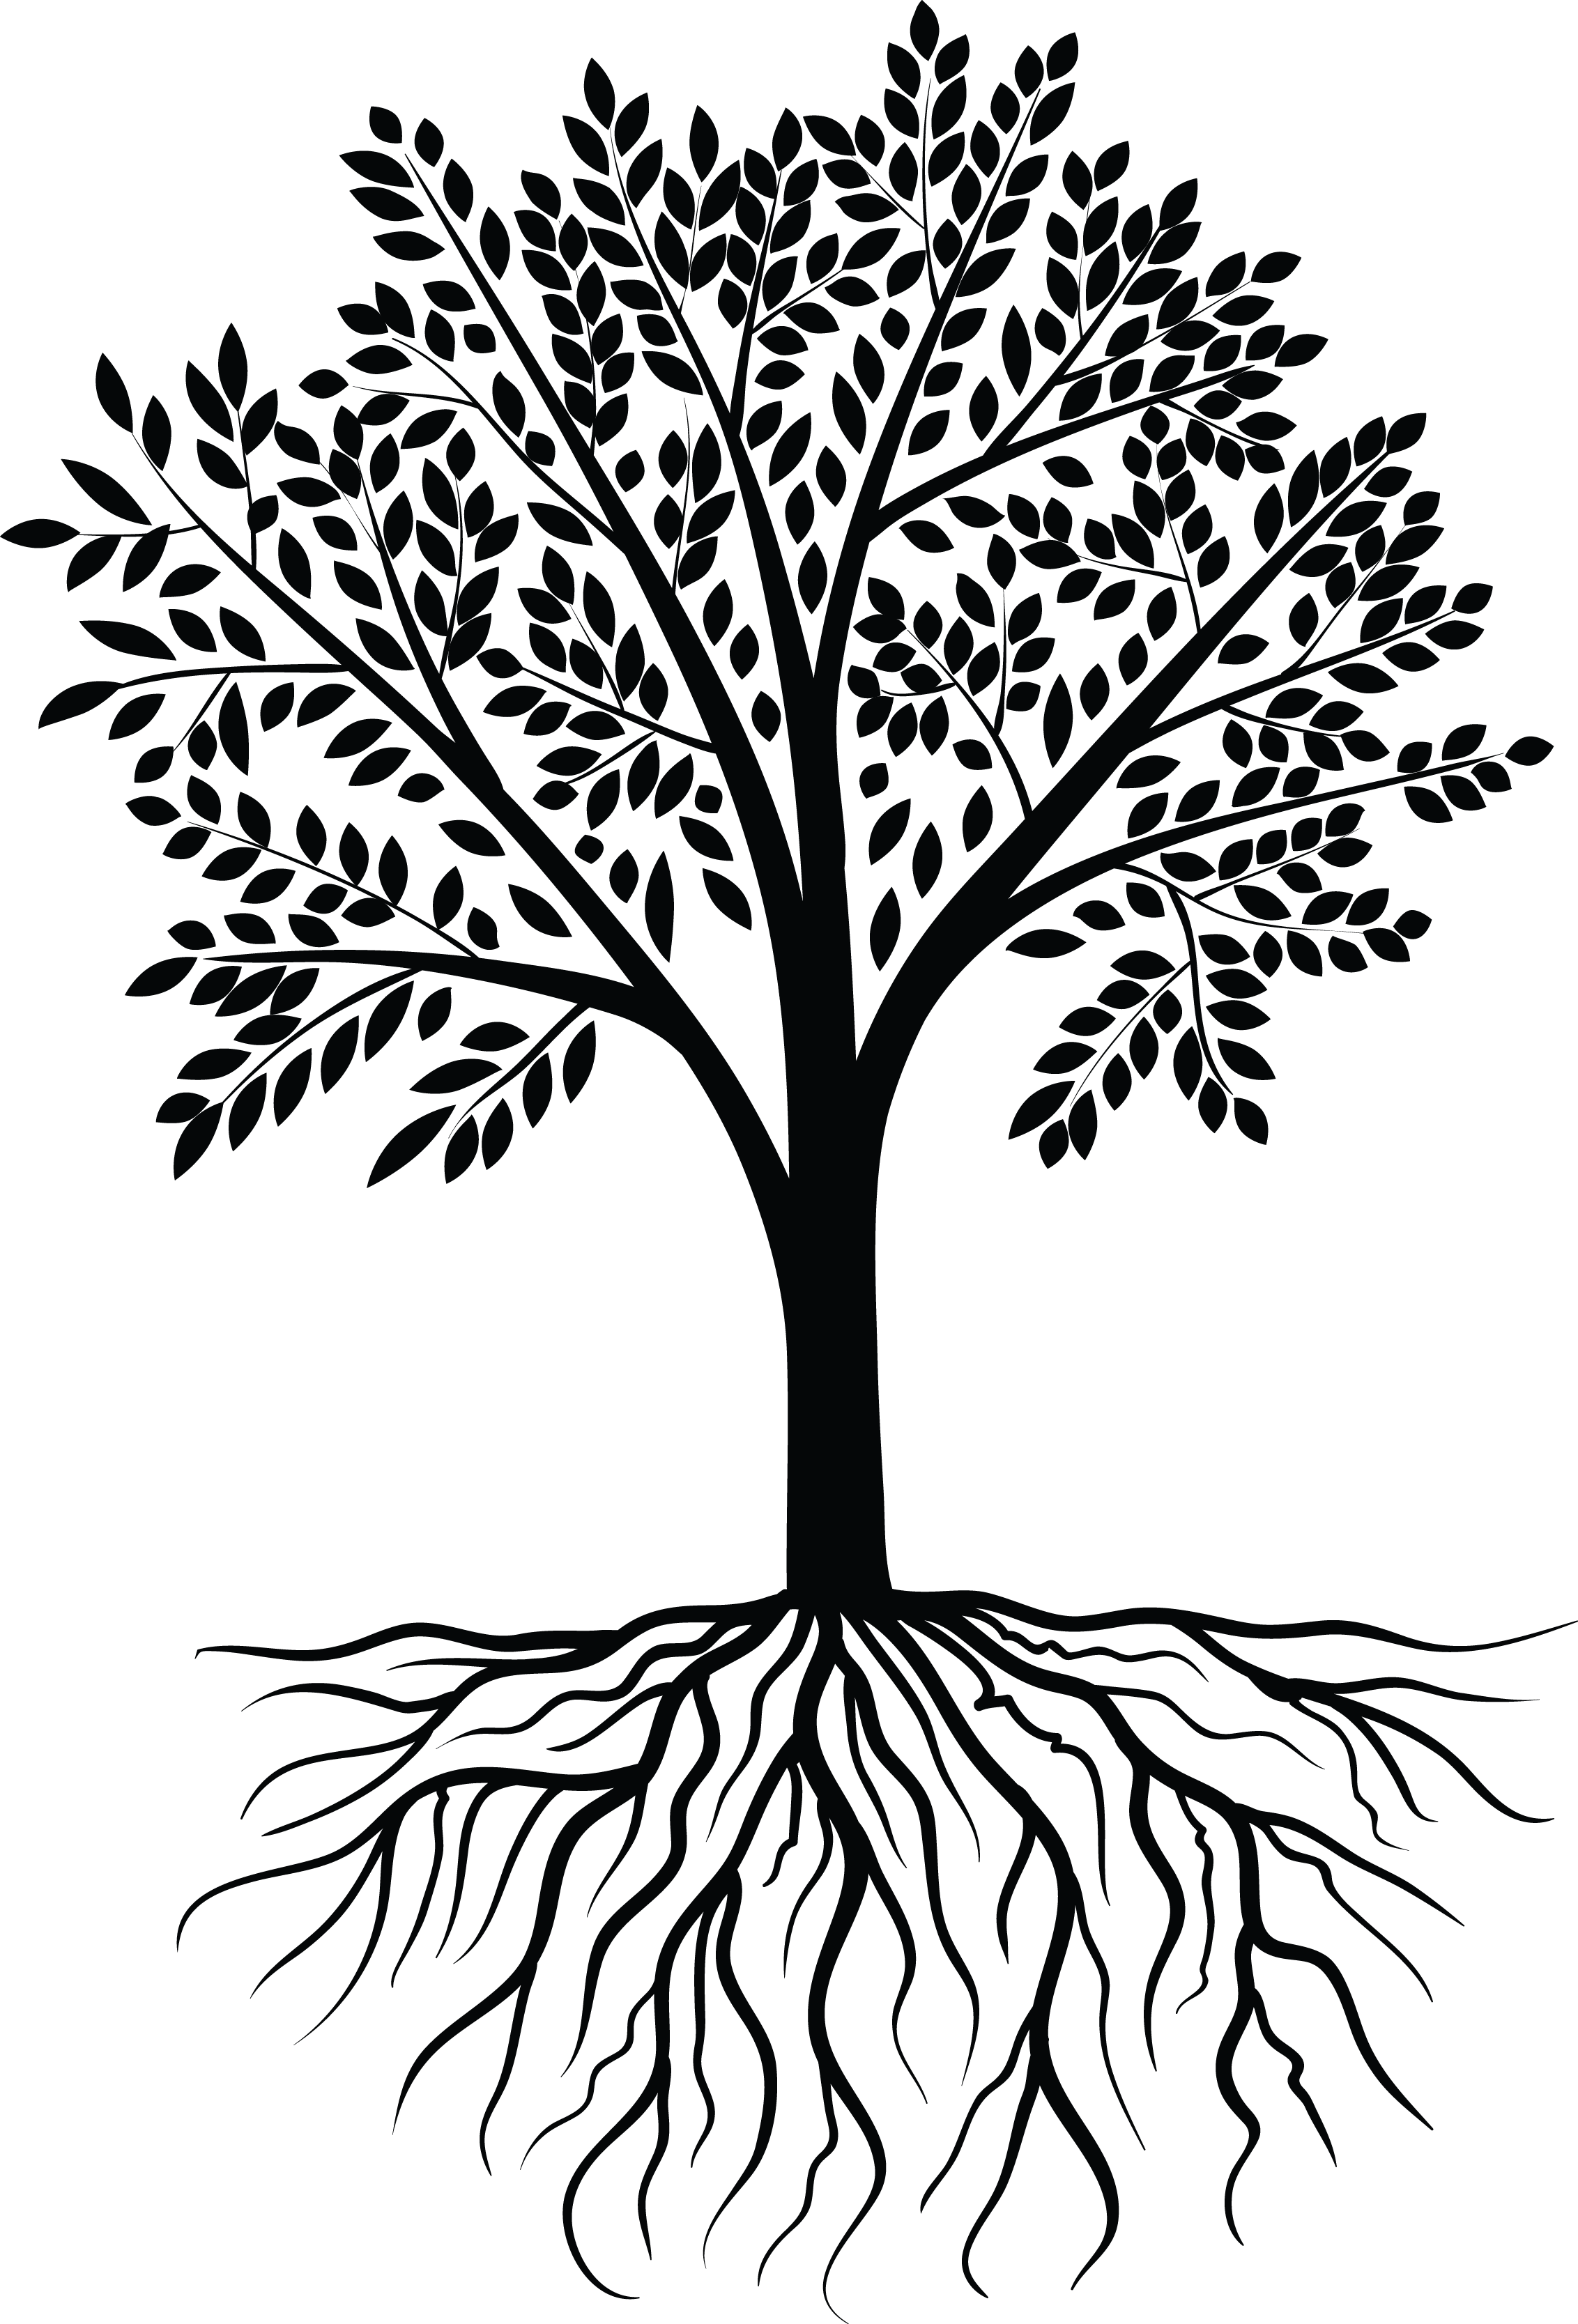 Tree Vector Black White Designs Hd Wallpapers Palm Tree Clip Art Tree Vector Png Palm Tree Vector